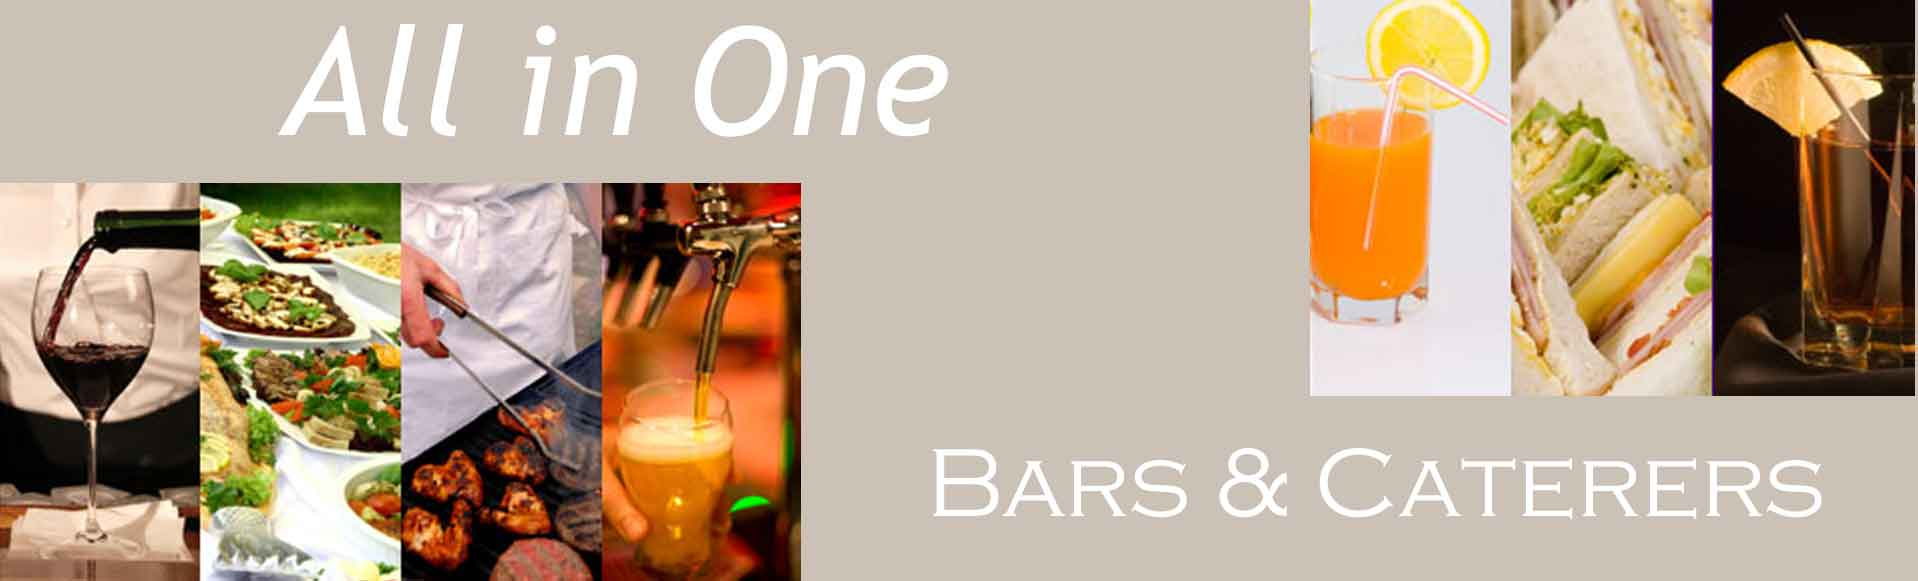 All in One Bars and Caterers logo